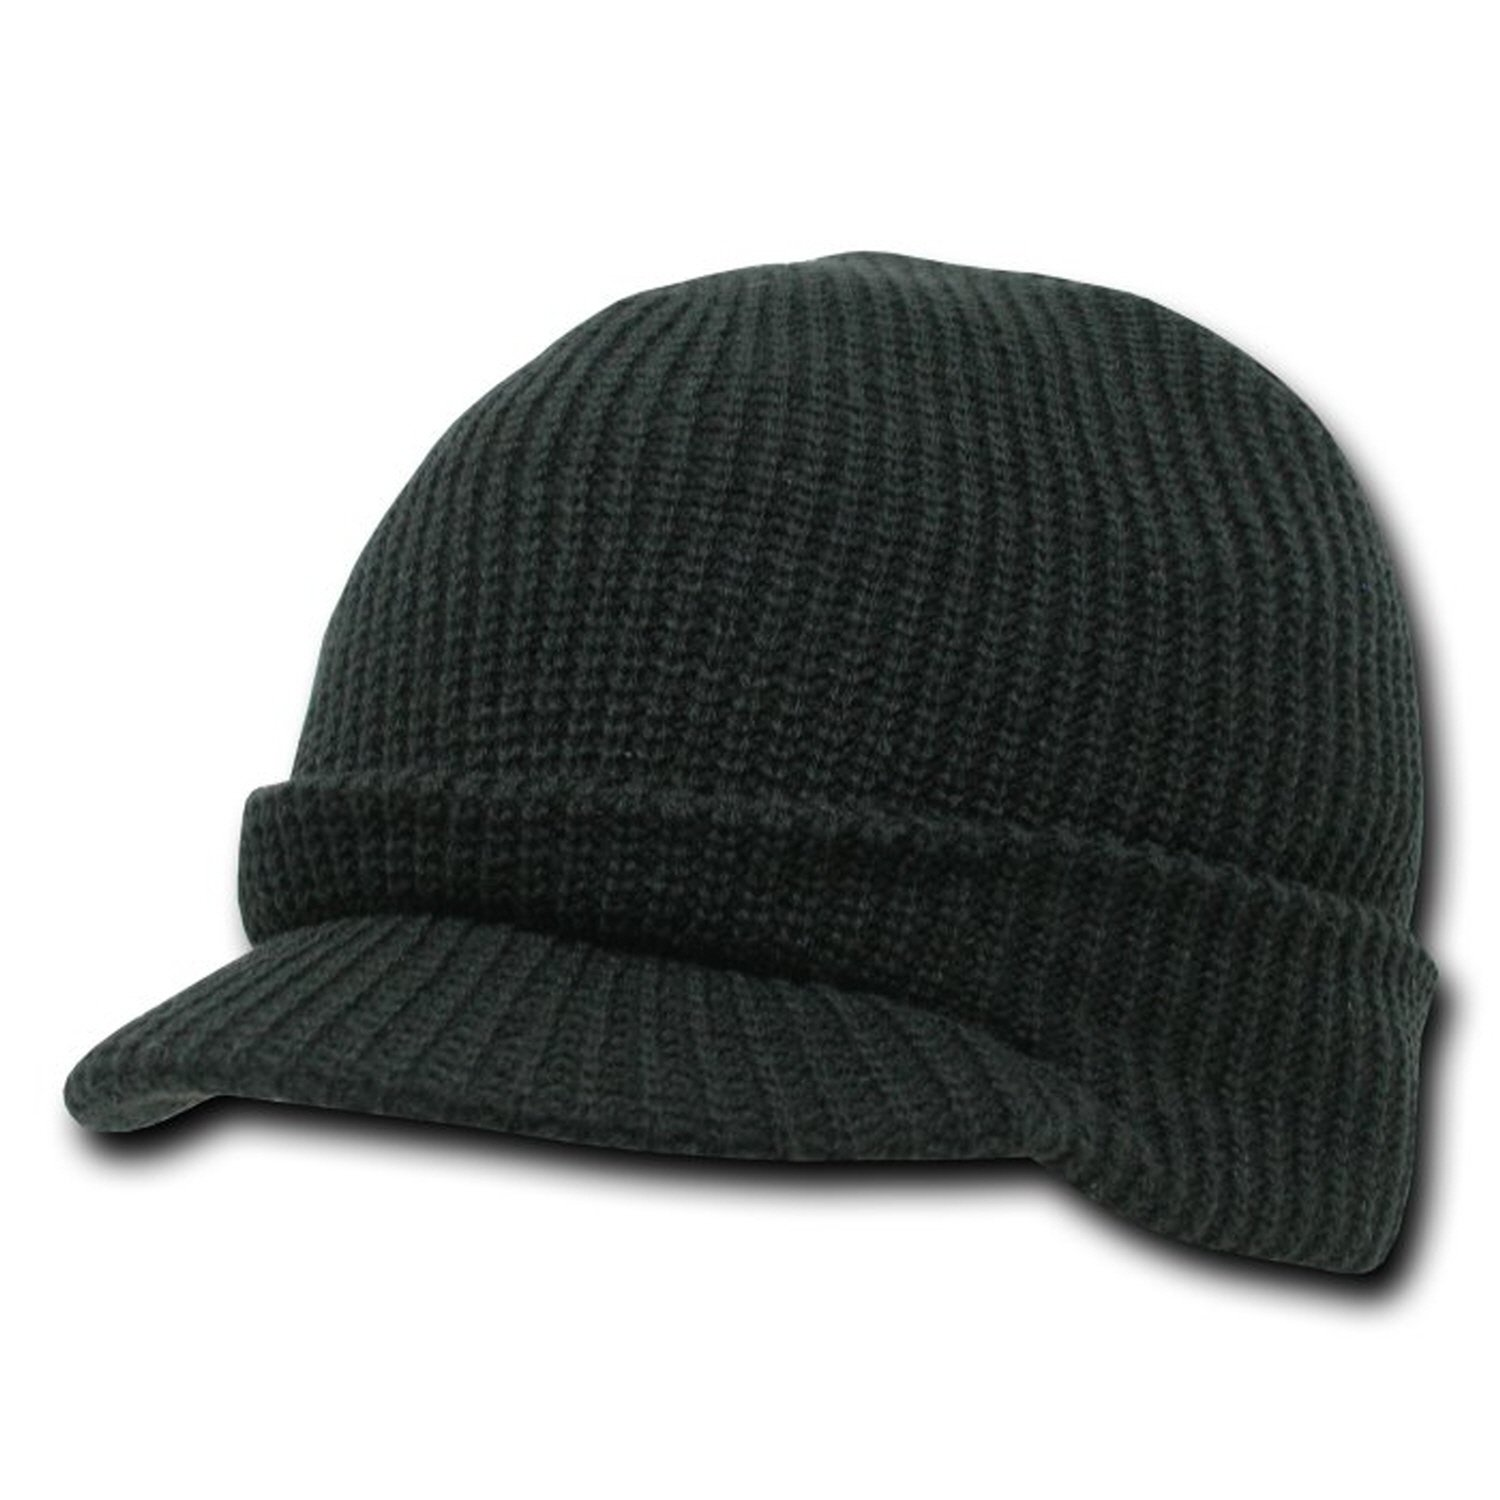 Amazon.com   Black Visor Beanie Knit Jeep Cap Hat   Cold Weather Hats    Sports   Outdoors 7a06194f95bf